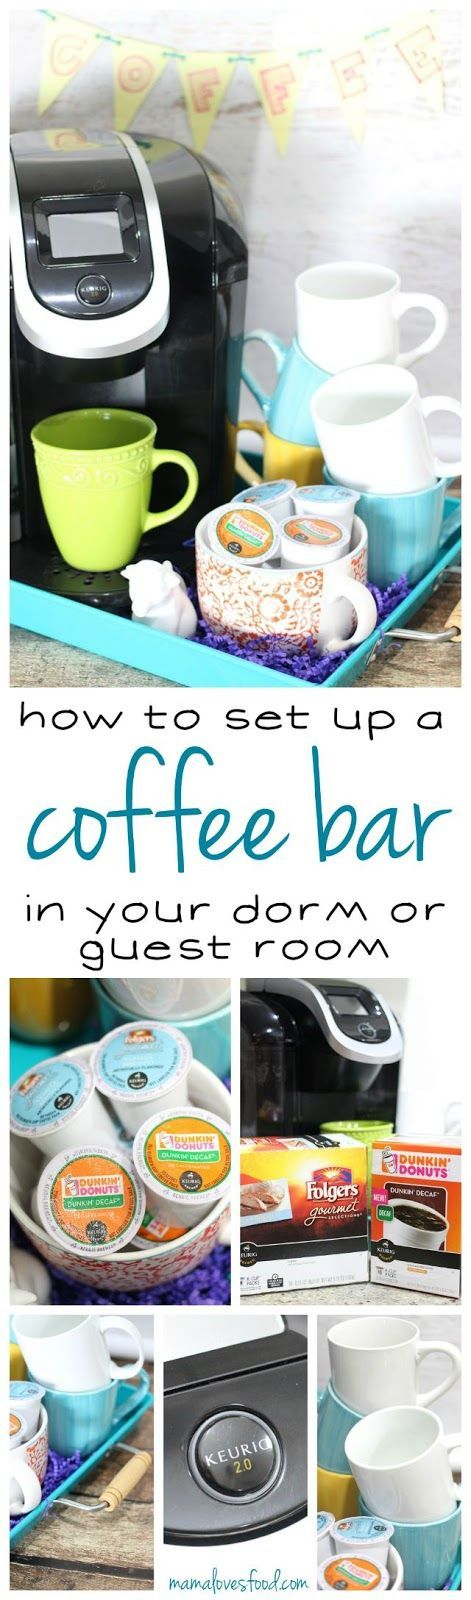 How To Set Up A Coffee Bar In Your Dorm Or Guest Room! Part 98